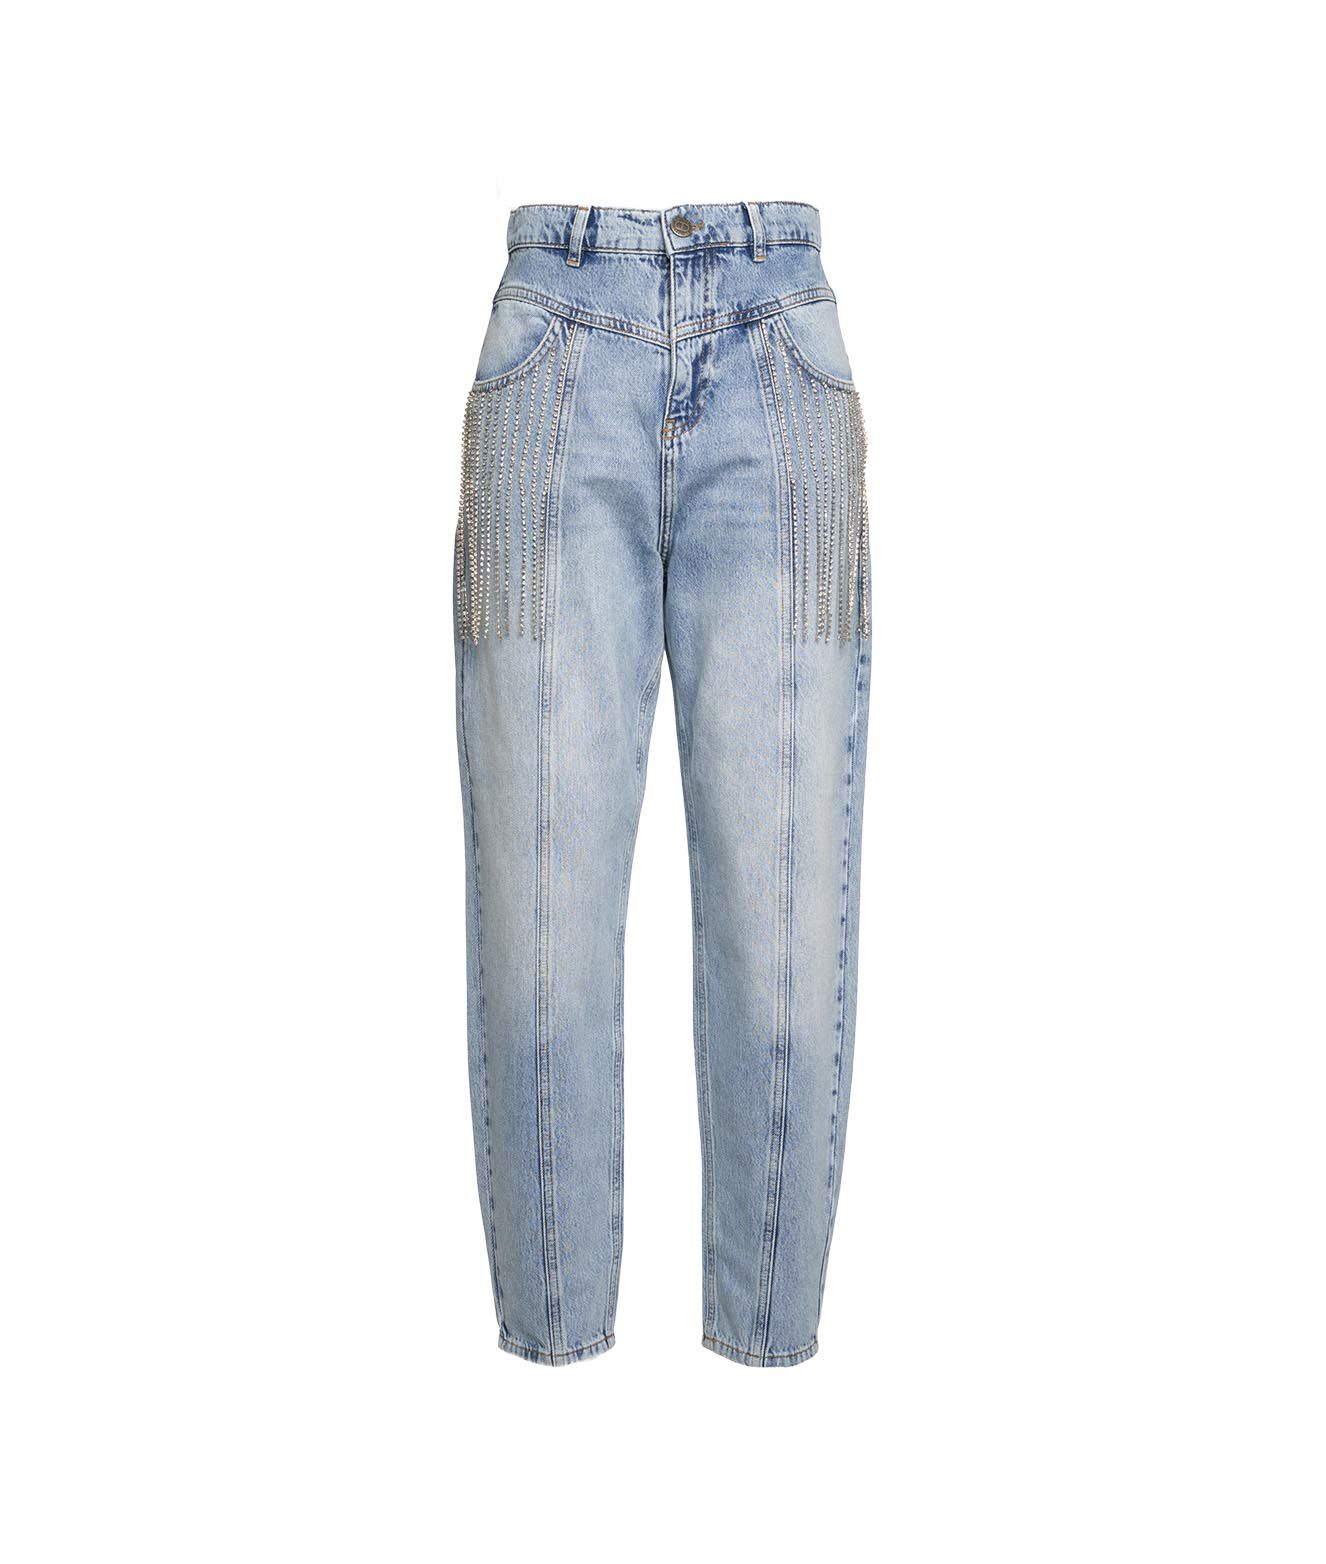 Twinset JEANS WITH RHINESTONE APPLICATIONS